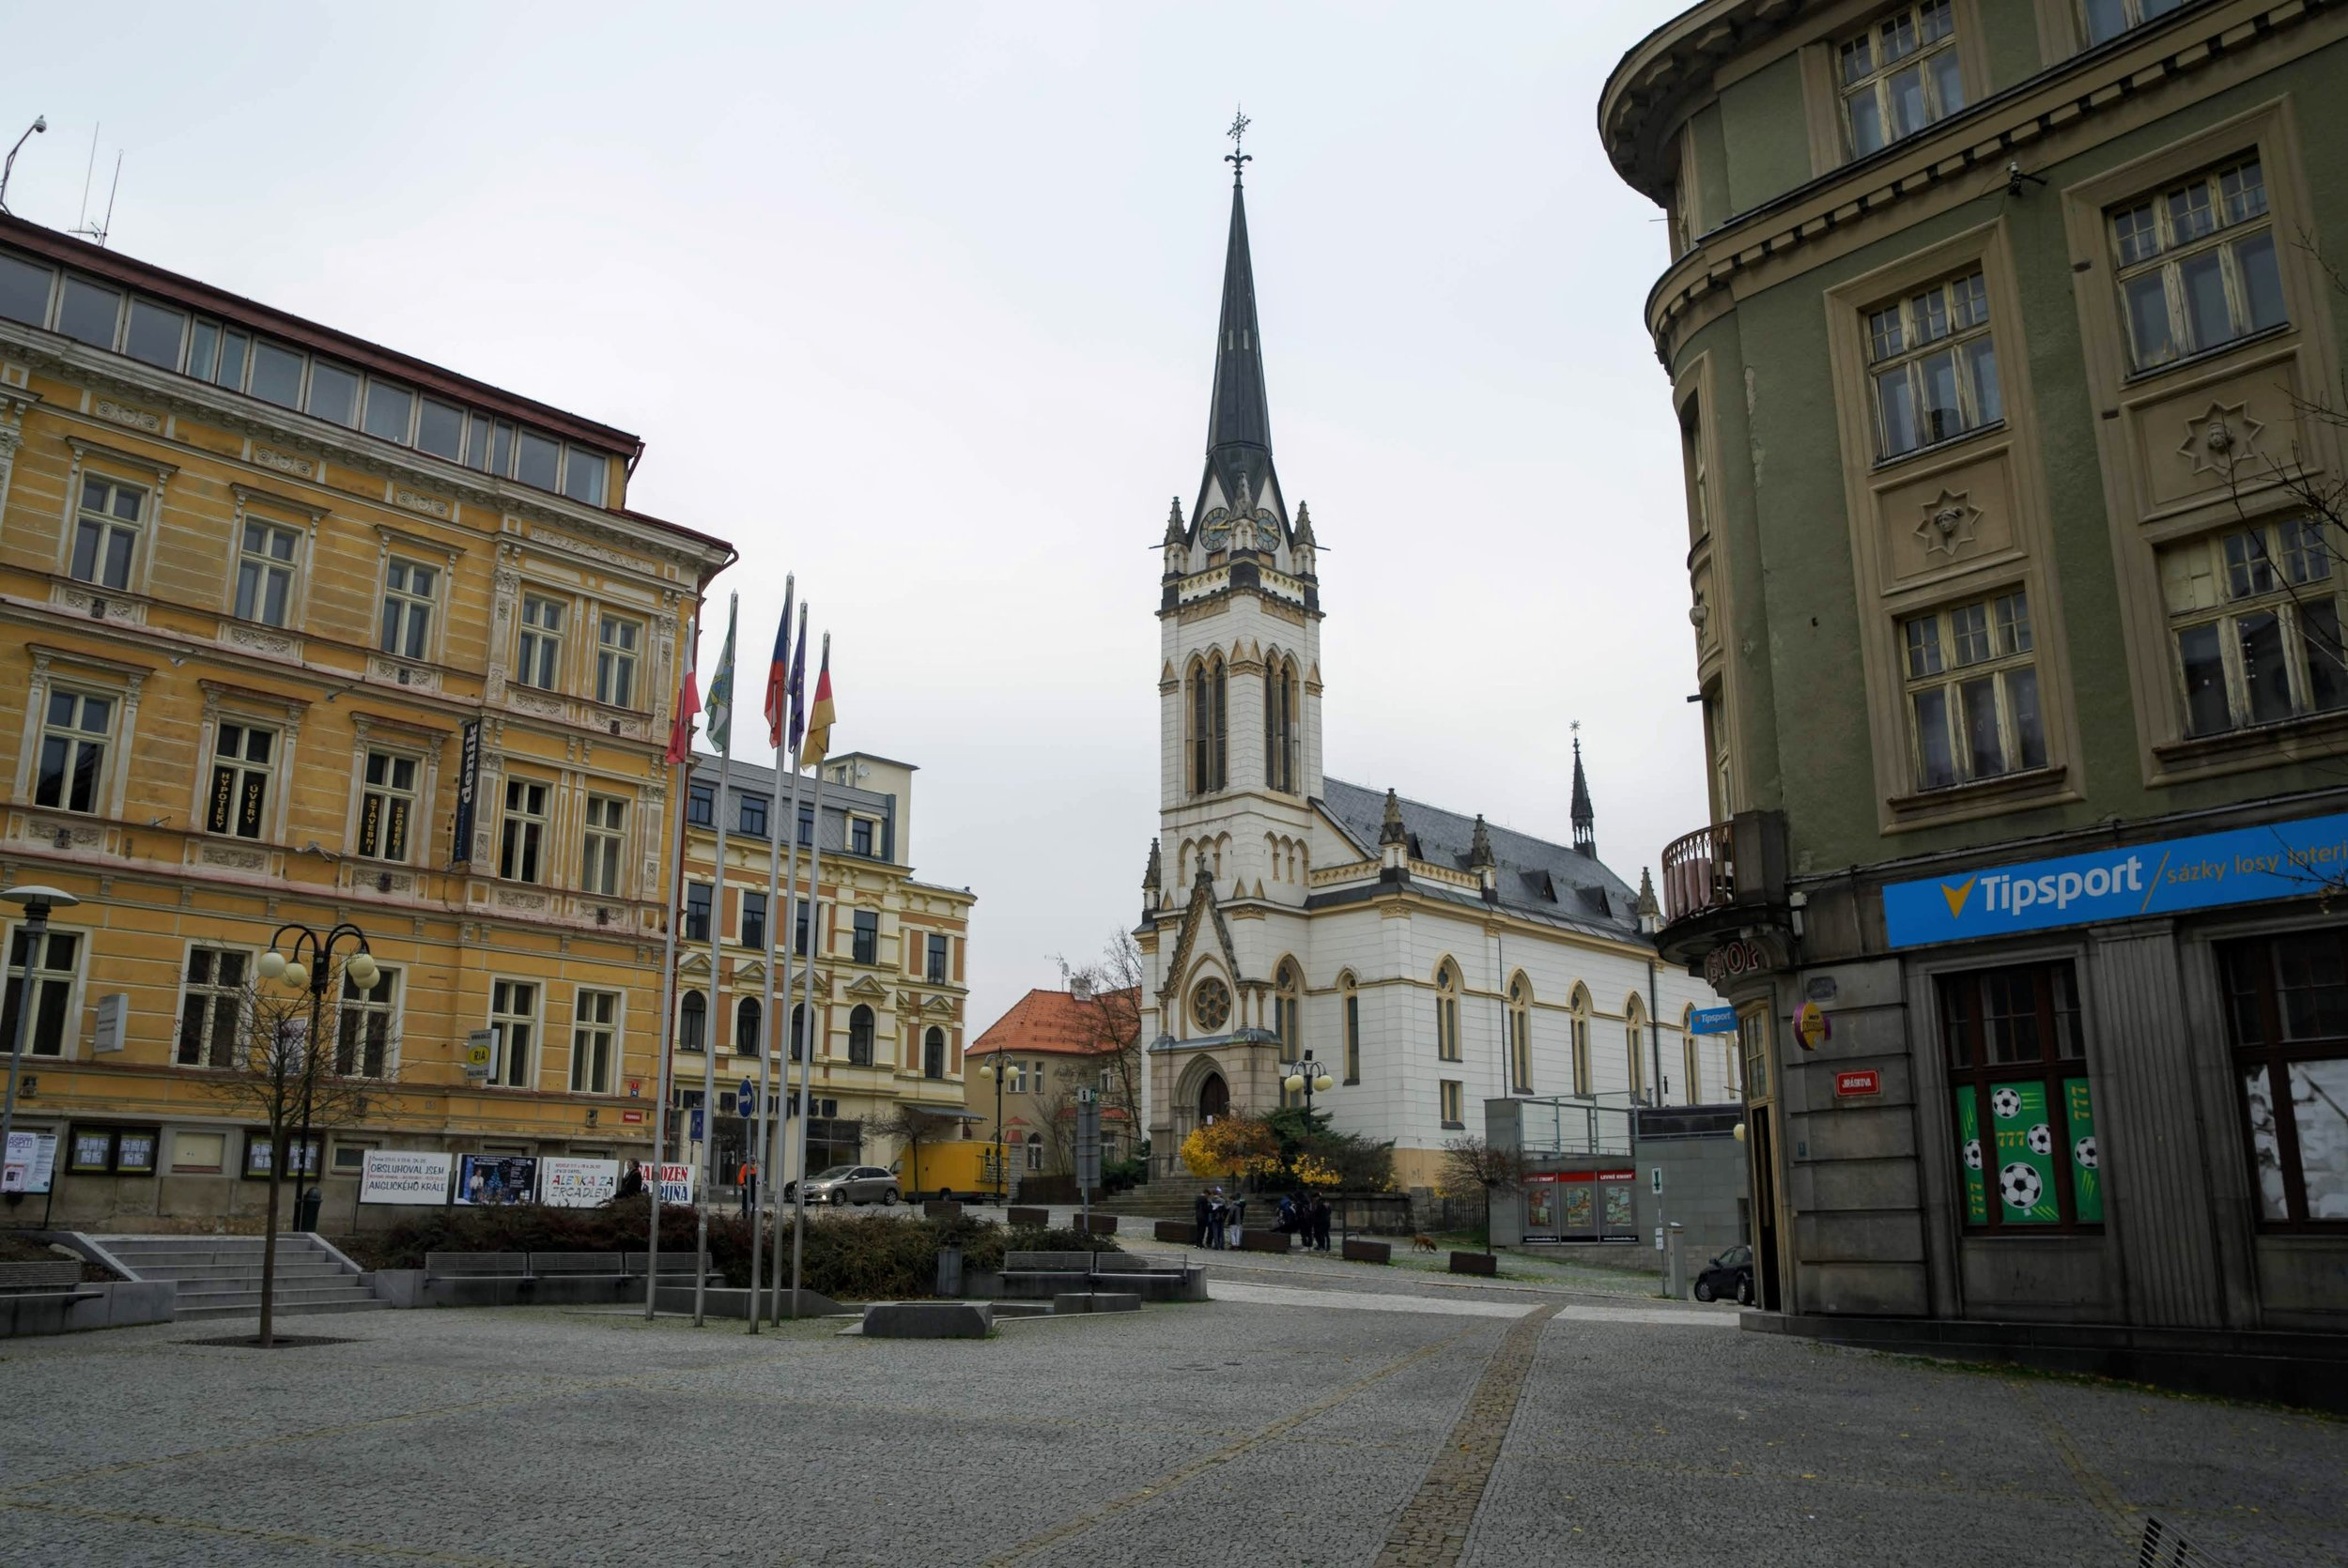 A town square of Jablonec Nad Nisou. Translated as Jablonec on the Nisa River.